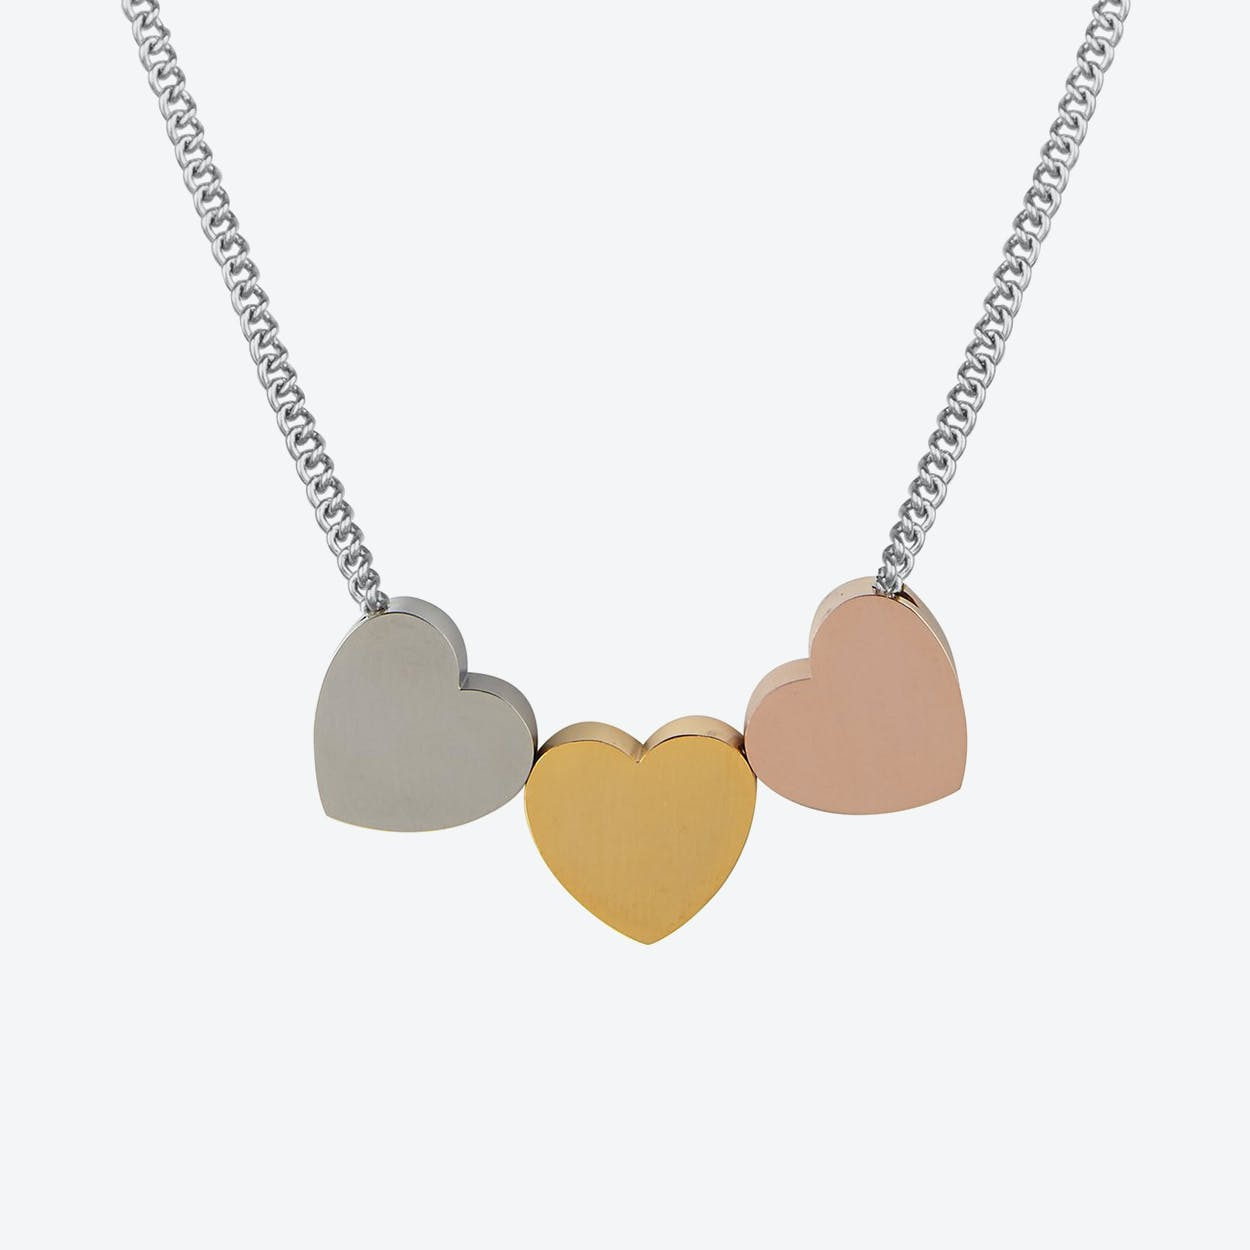 Candy Hearts Trio Necklace in One heart is finished in polished stainless steel in one in 18ct rose-gold plate and one in 18ct gold plate.